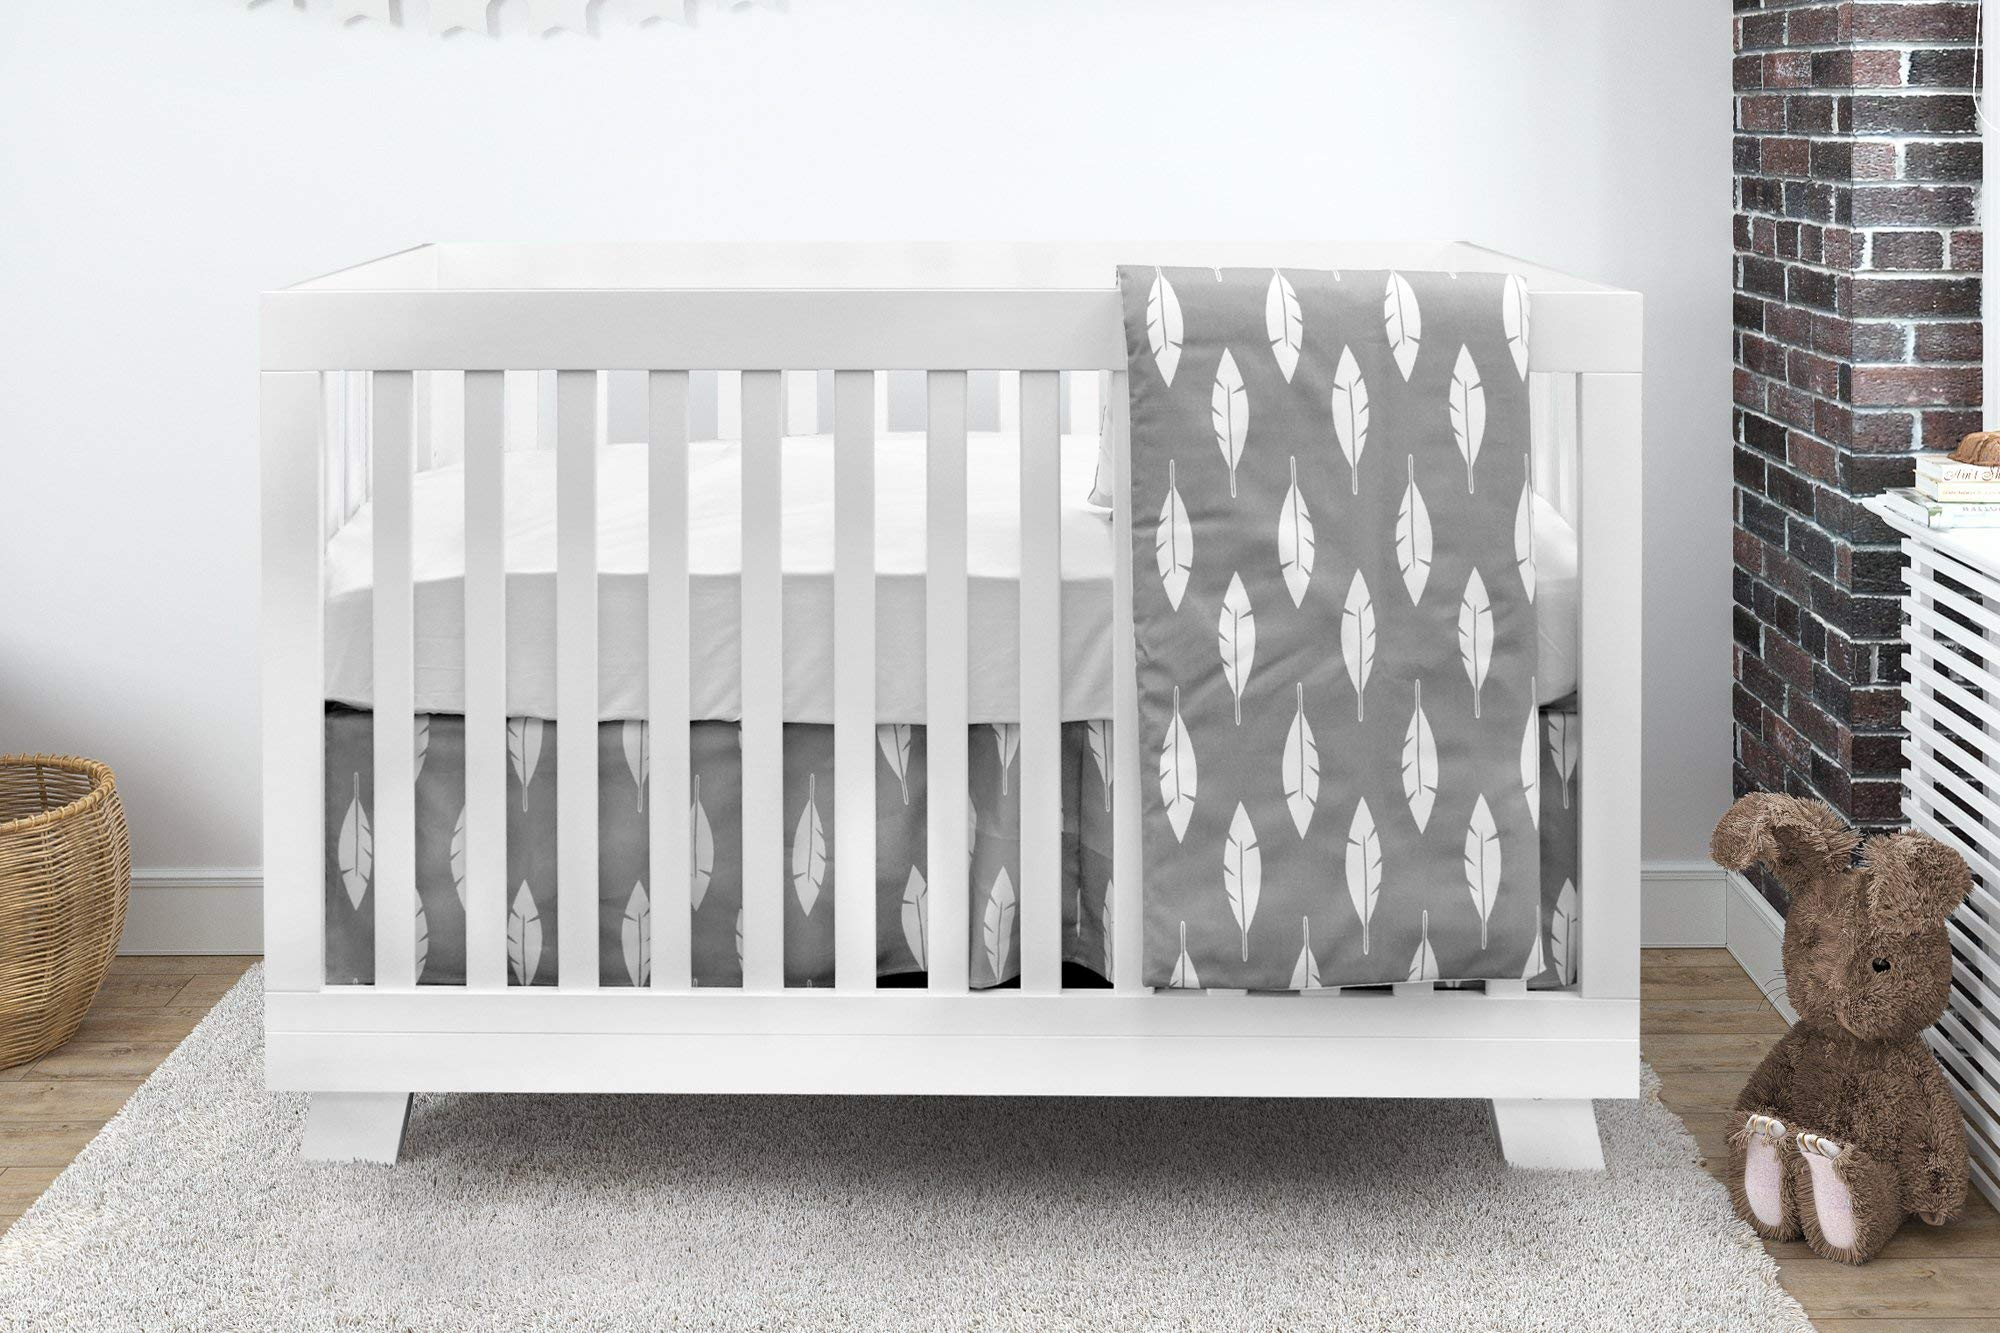 BOOBEYEH & DESIGN Baby Crib Bedding 4 Piece Set, Perfect for Baby Girls and Boys, Includes Gray and White Feather Design, Fitted Sheet, Crib Comforter, Comforter Cover, Skirt. by BOOBEYEH & DESIGN (Image #1)